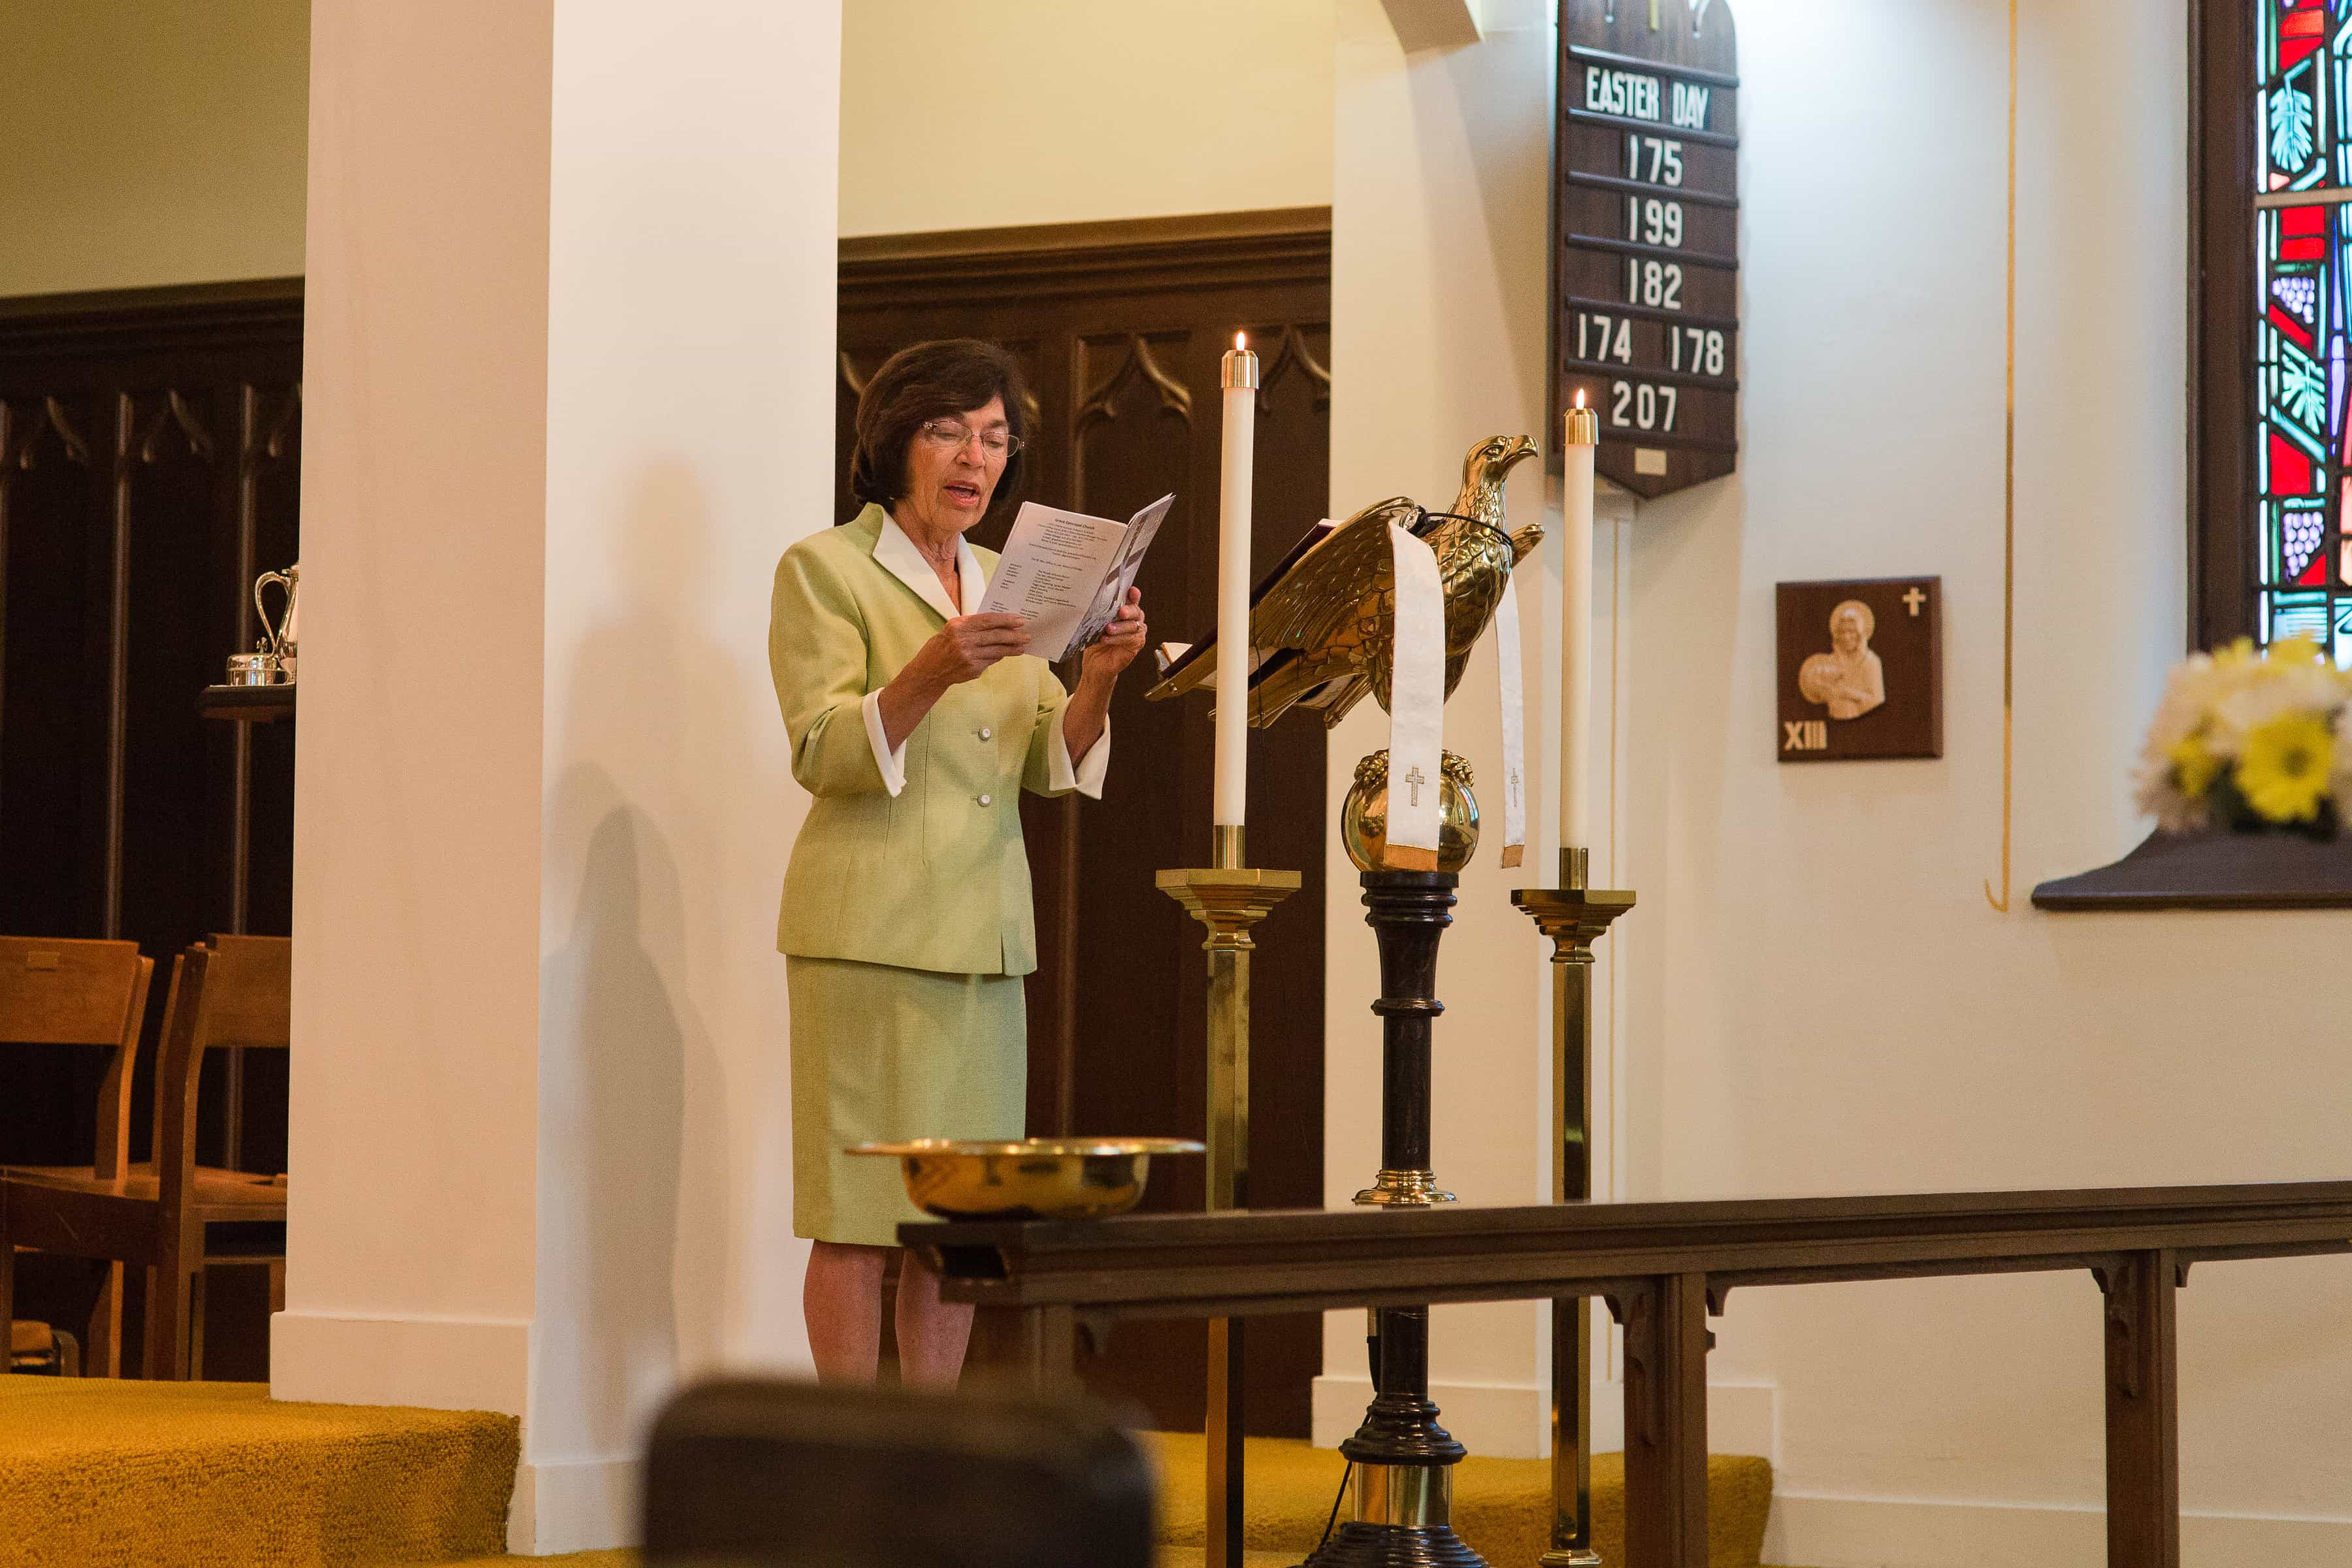 Lay Reader reading during a service